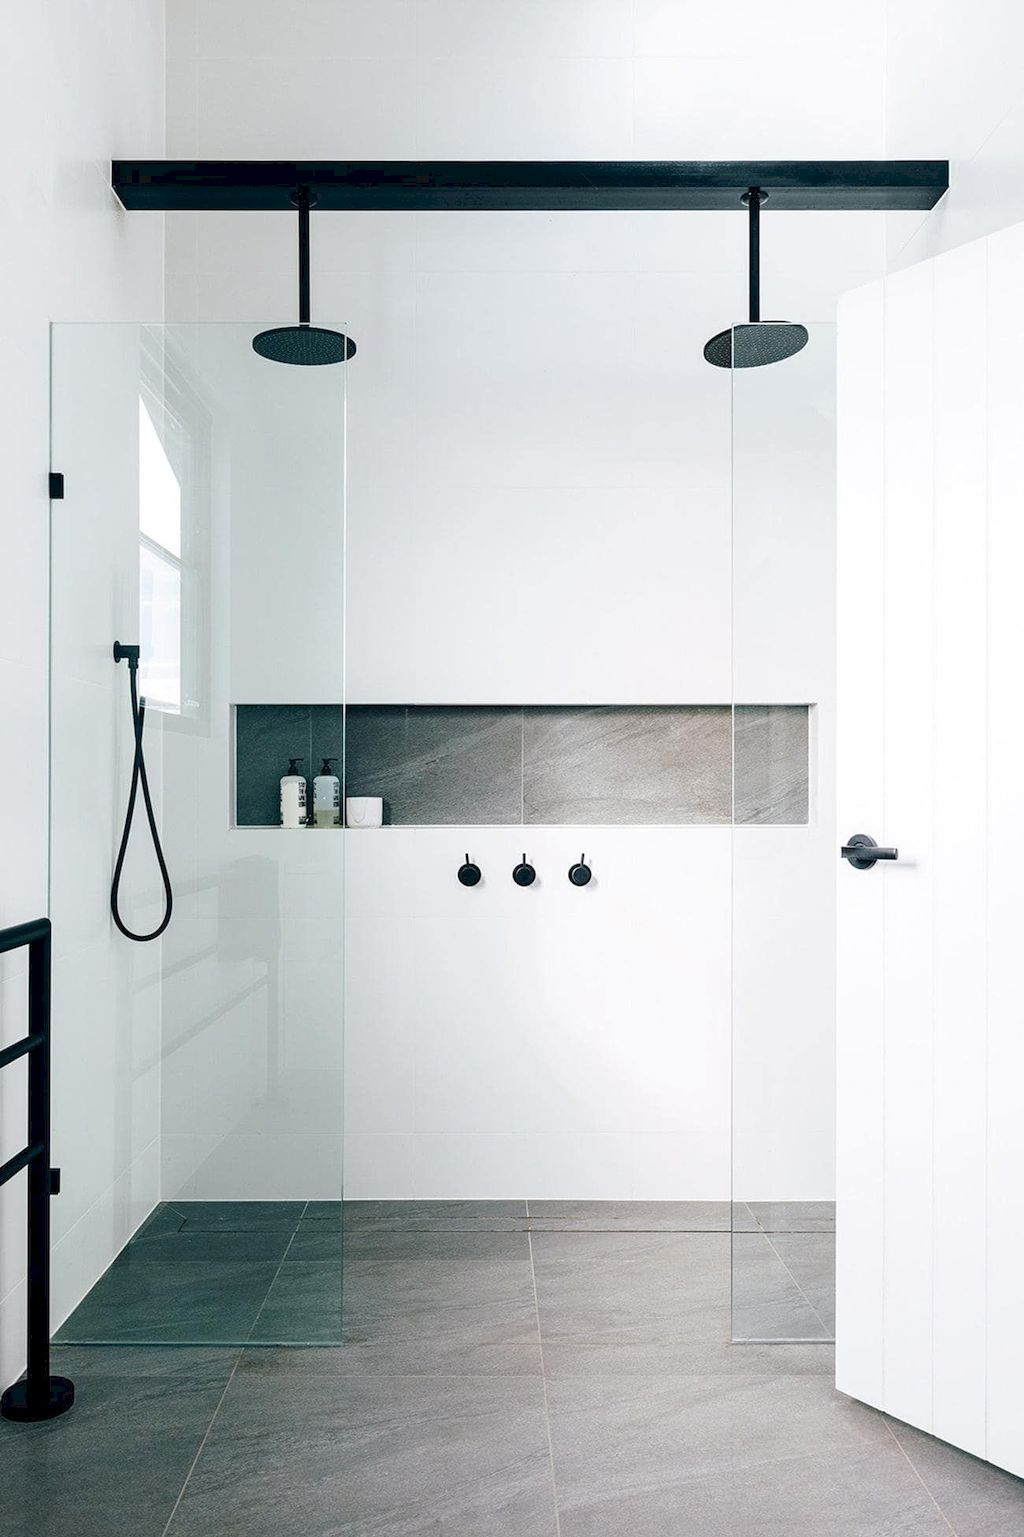 70+ Tiles Ideas for Small Bathroom - Get more Ideas in our gallery | #smallbathroom #bathroomdecoration #bathroomideas #bathroomtiles #bathroomdecor #homedecor (80)